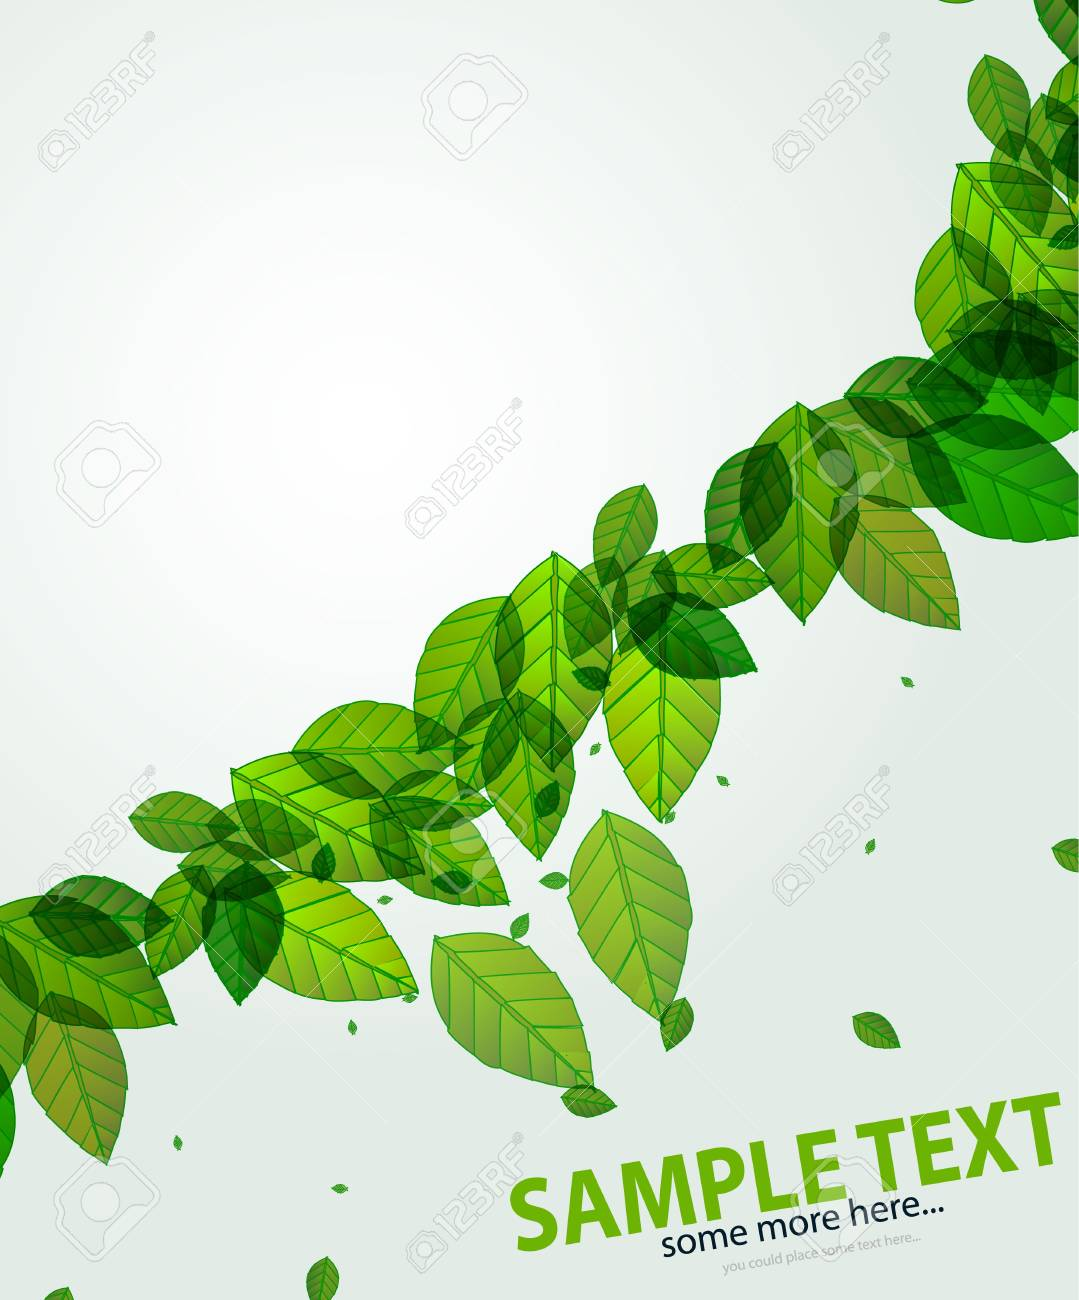 shiny green background with leaves and flares Stock Vector - 14133278